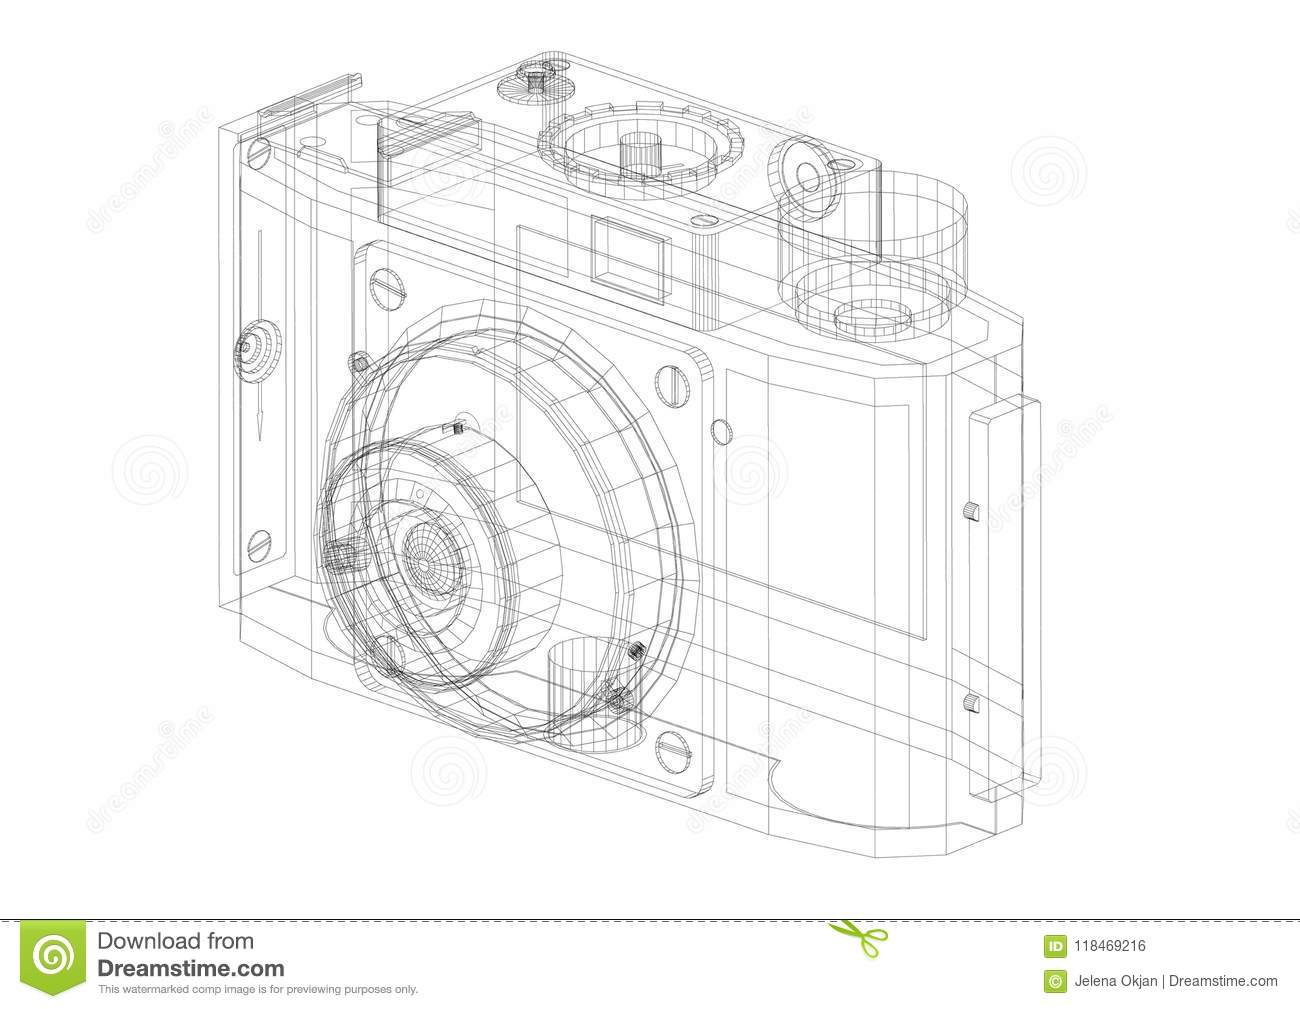 Digital camera architect blueprint stock illustration illustration download comp malvernweather Choice Image